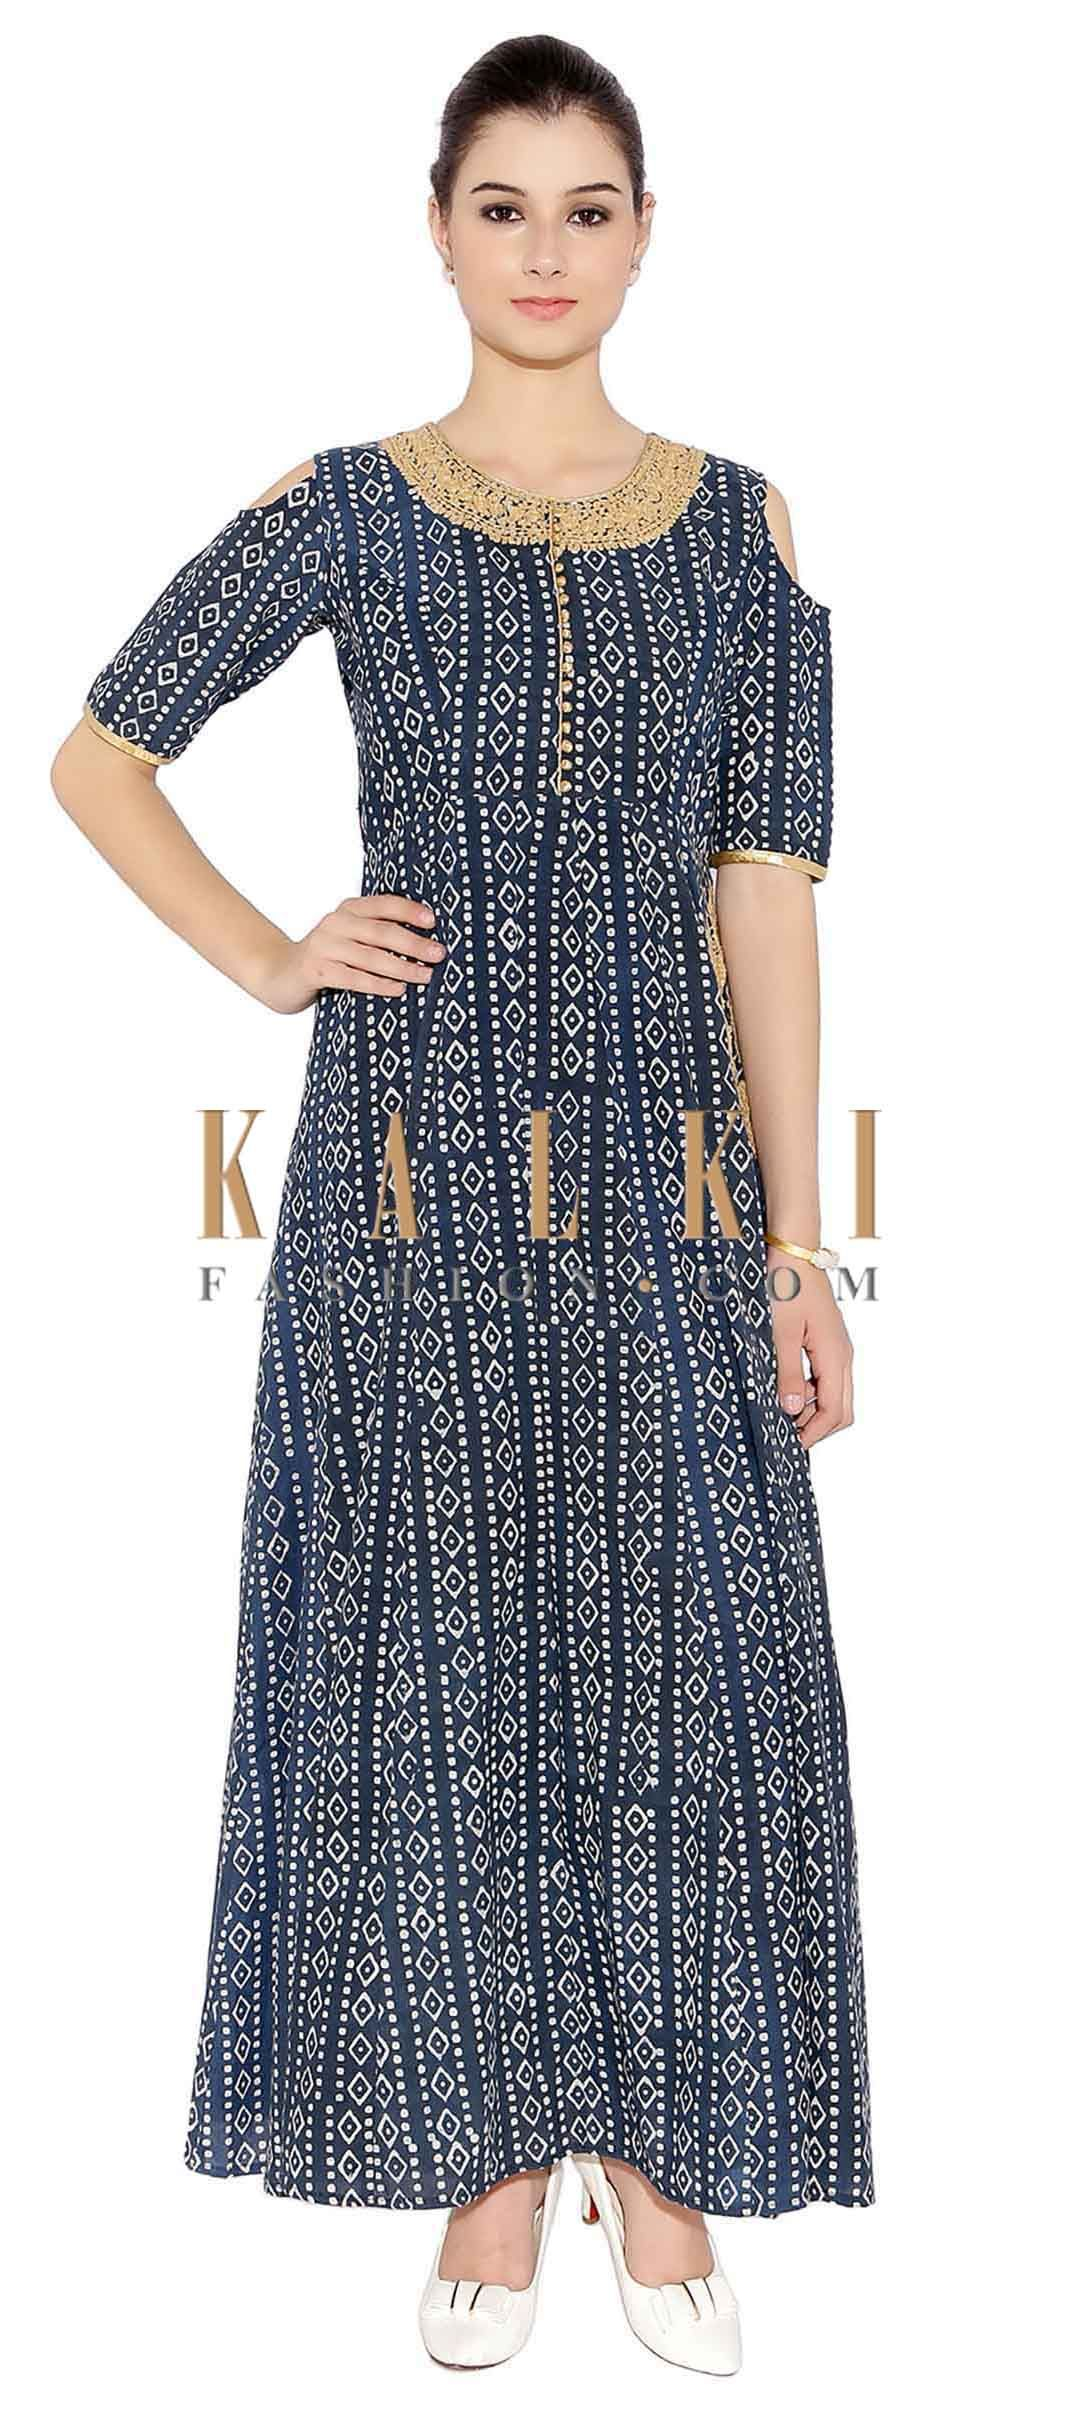 a3d9a4ce1d8 Grey Blue Cotton Kurti With Cut Out Shoulder Style Kurti With Thread  Embroider On Neck And One On Side Only On Kalki